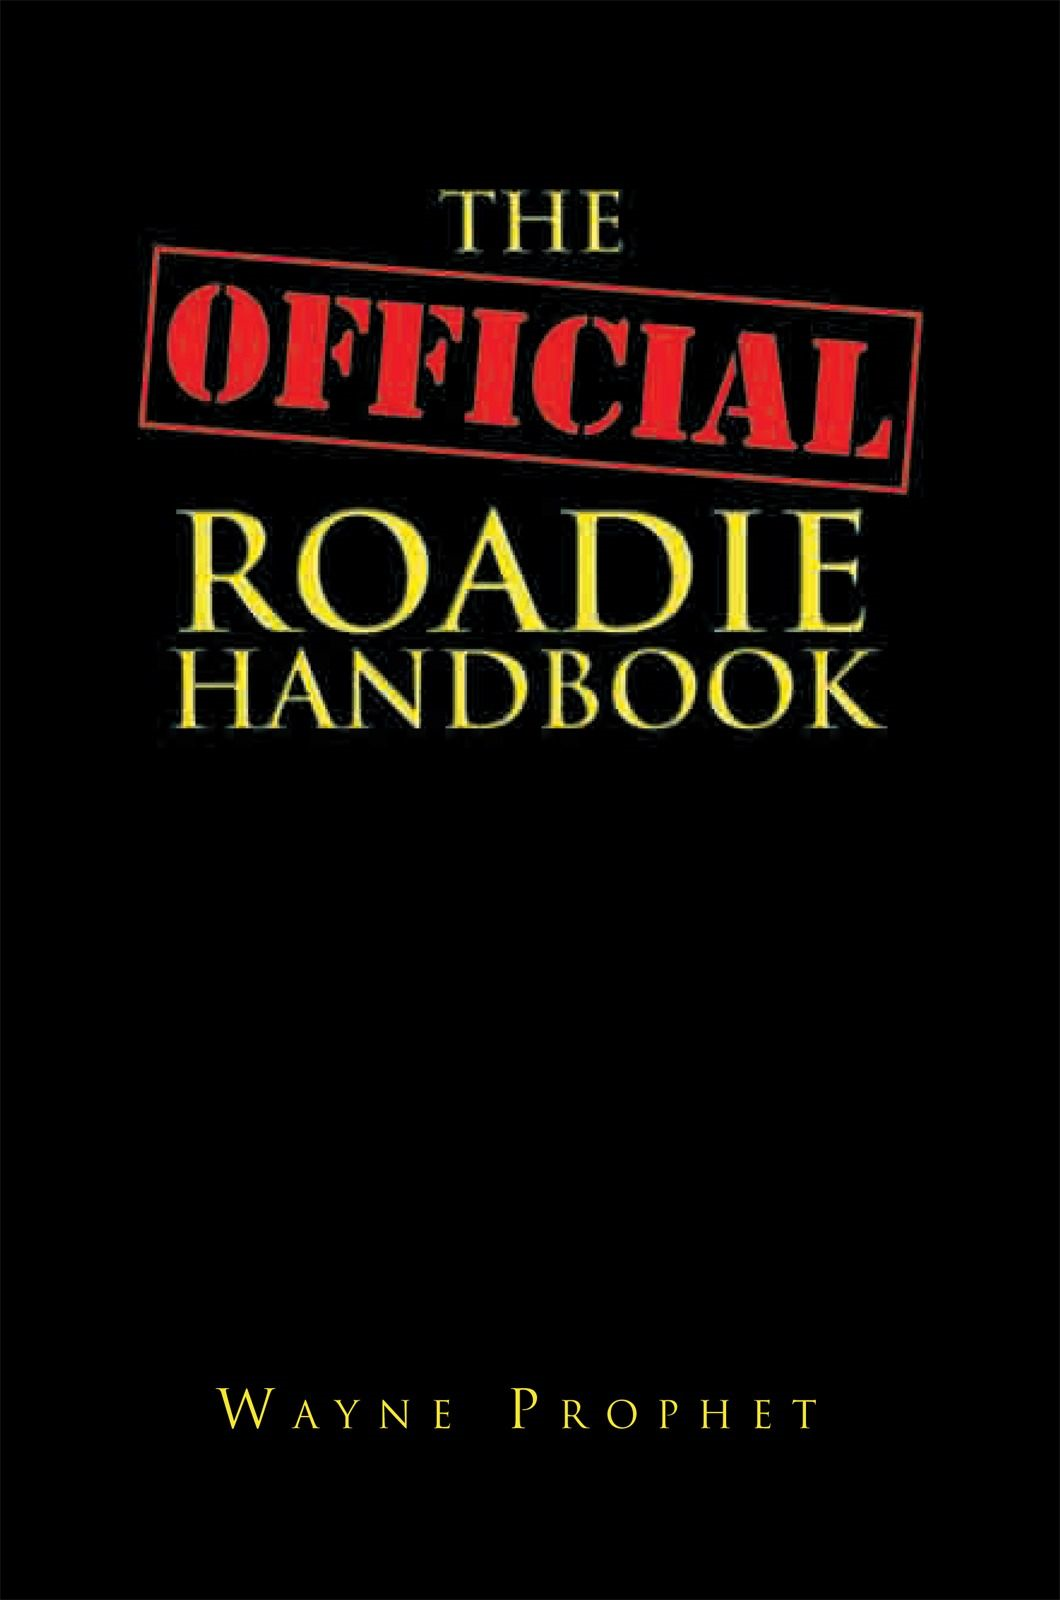 The Official Roadie Handbook